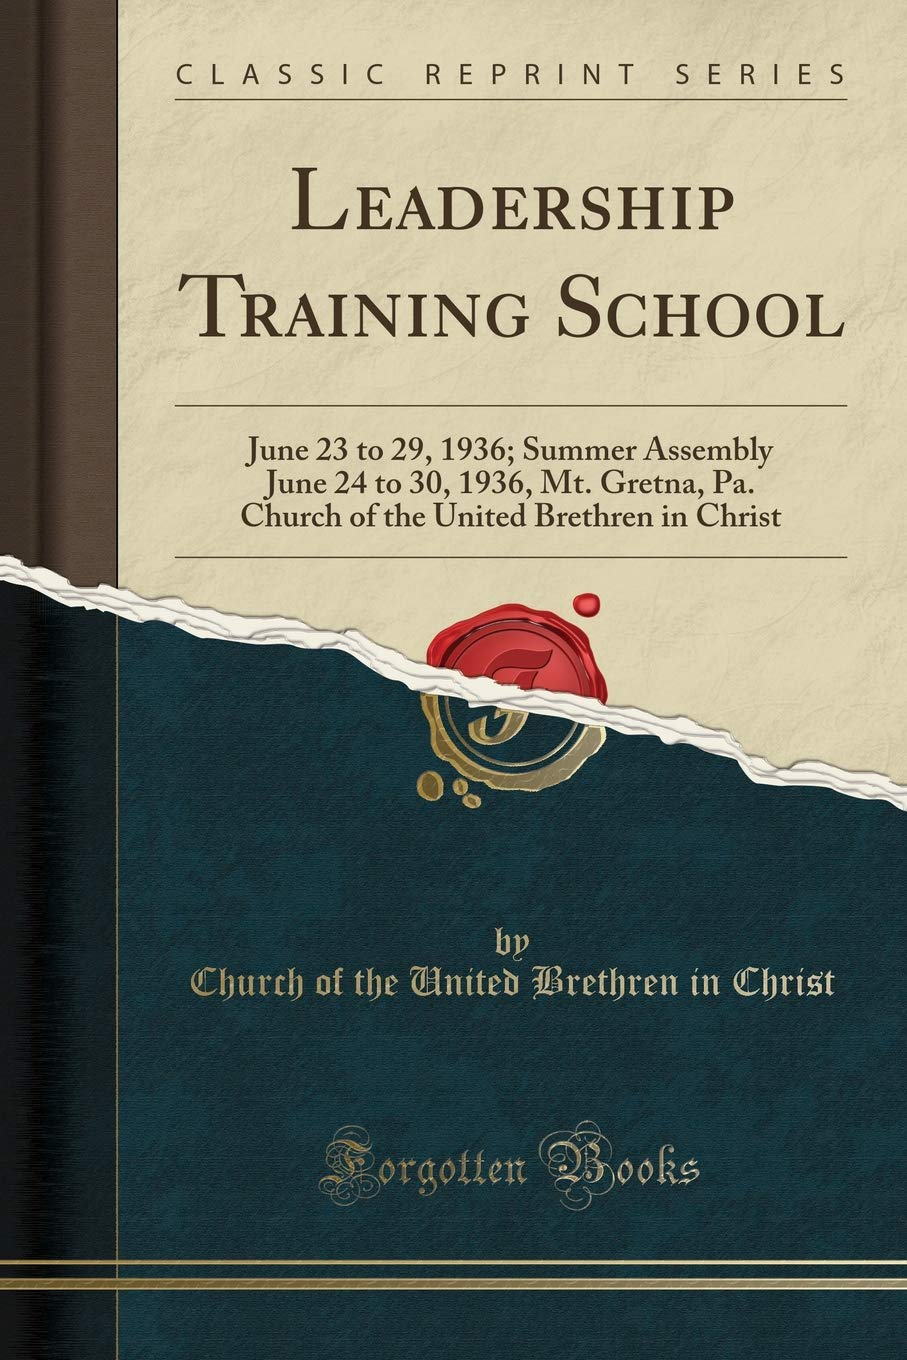 Leadership Training School: June 23 to 29, 1936; Summer Assembly June 24 to 30, 1936, Mt. Gretna, Pa. Church of the United Brethren in Christ (Classic Reprint) ebook